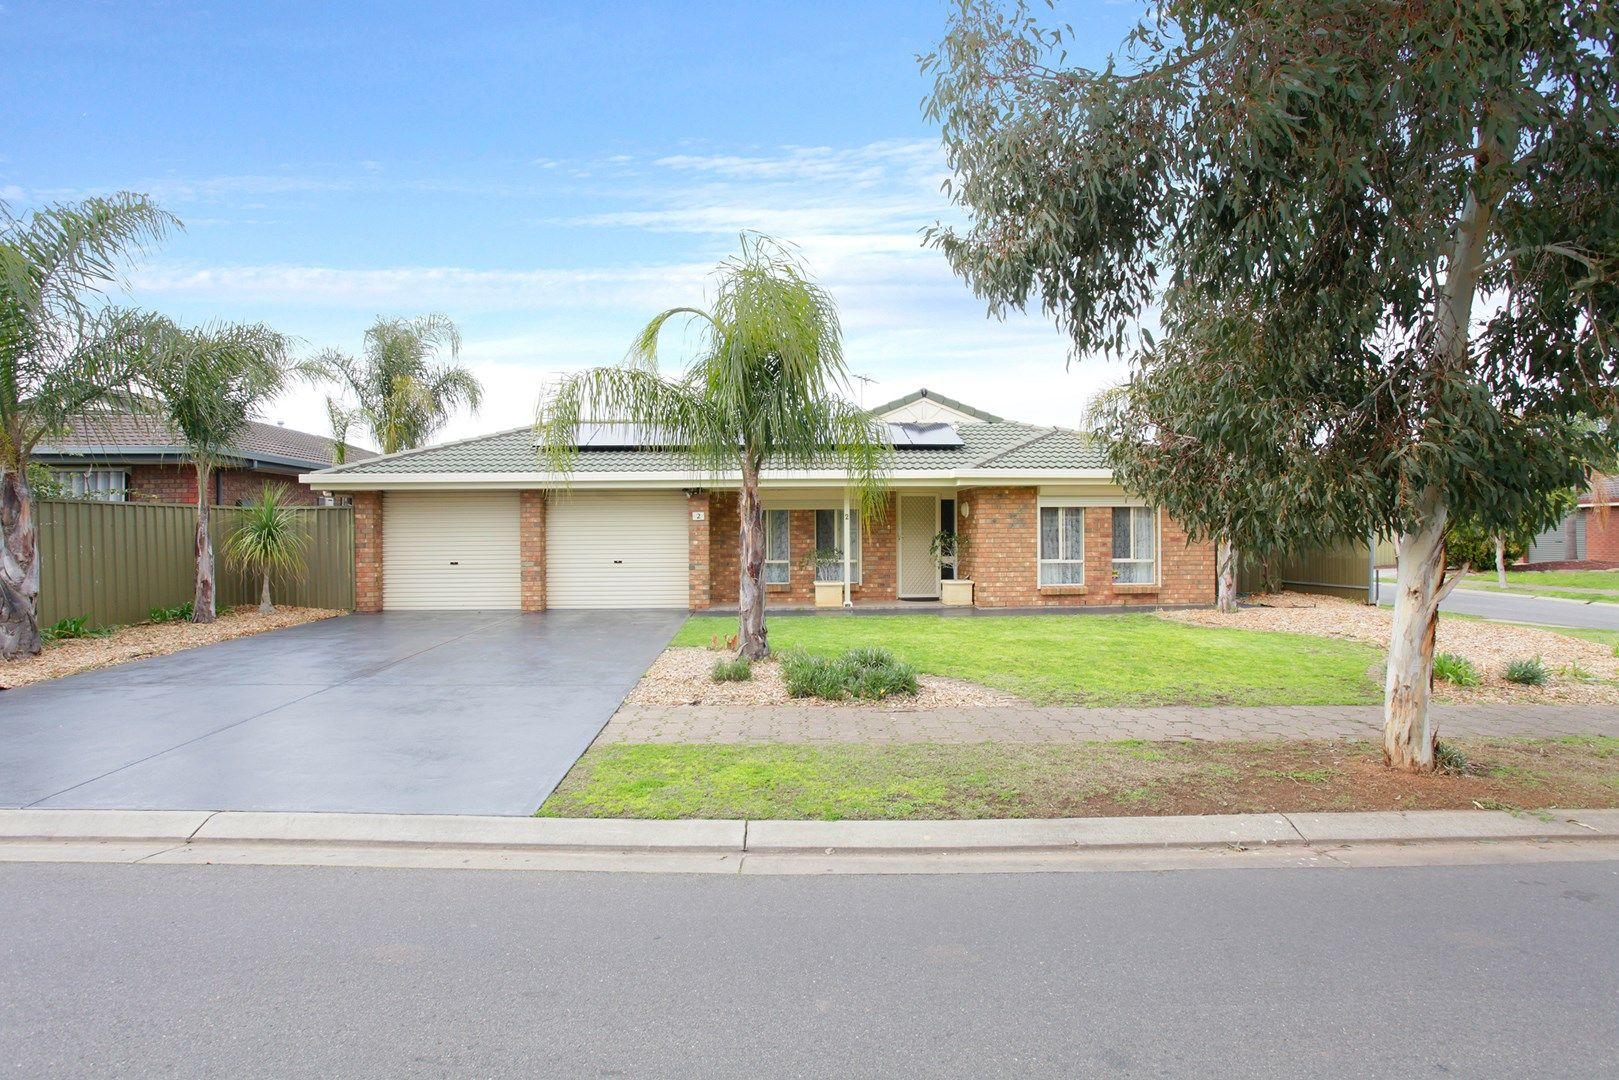 2 Tobin Way, Paralowie SA 5108, Image 0